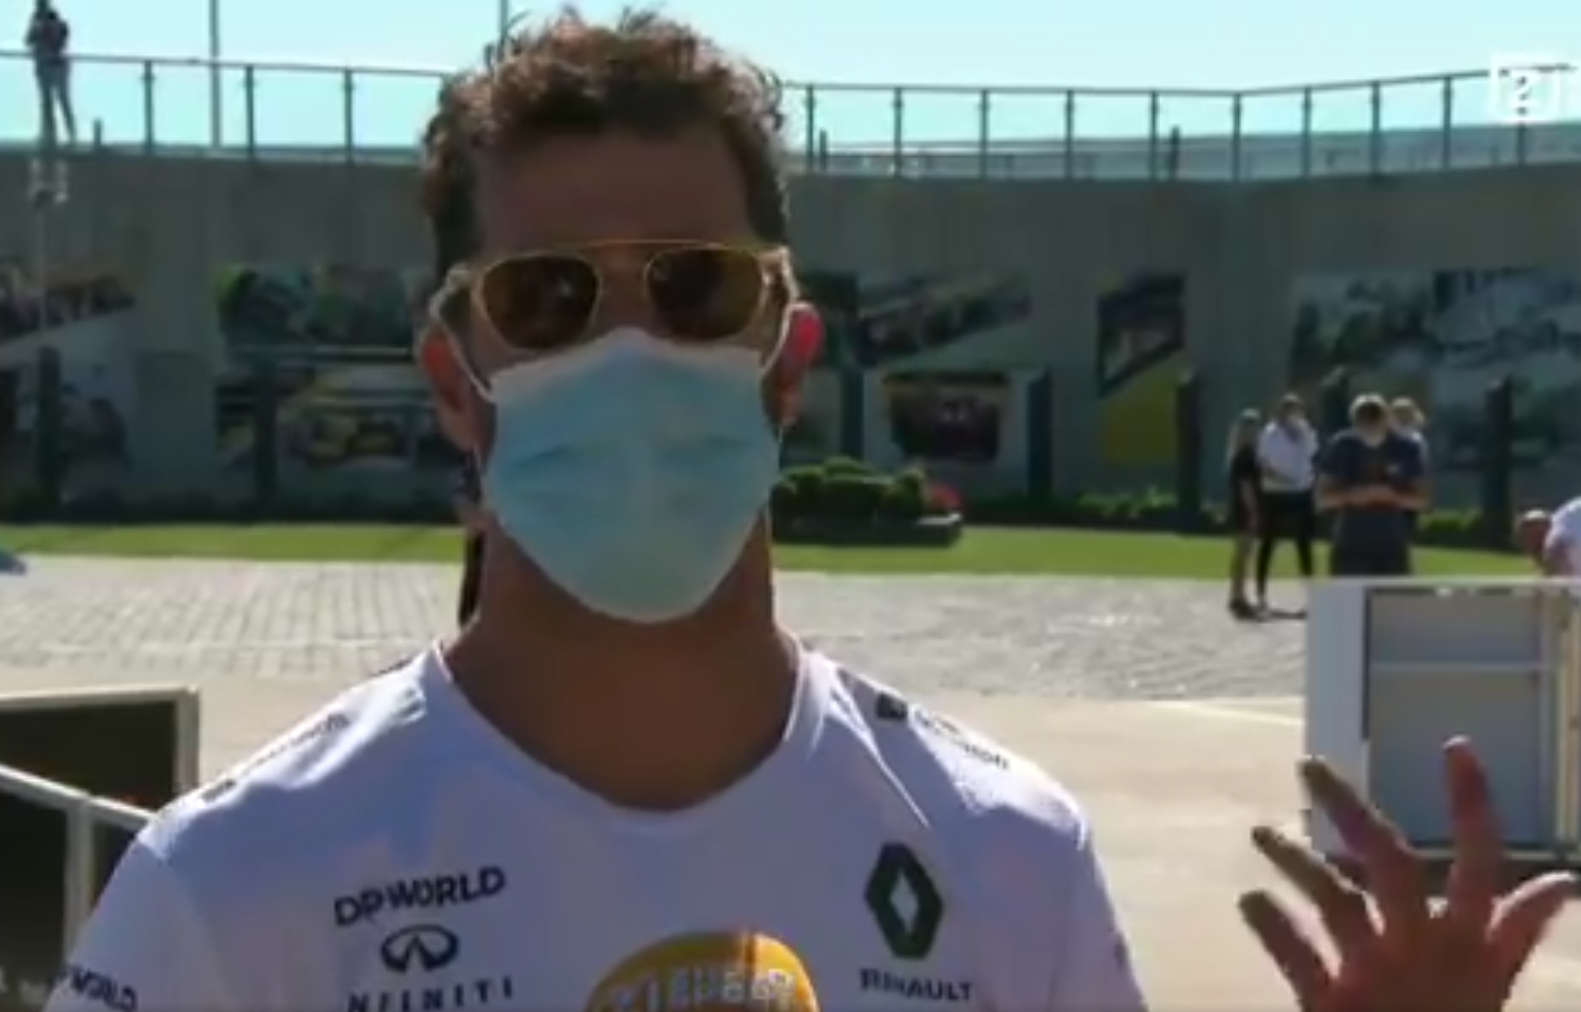 Daniel Ricciardo Might Lose His Expensive Watch After Bet With Reporter